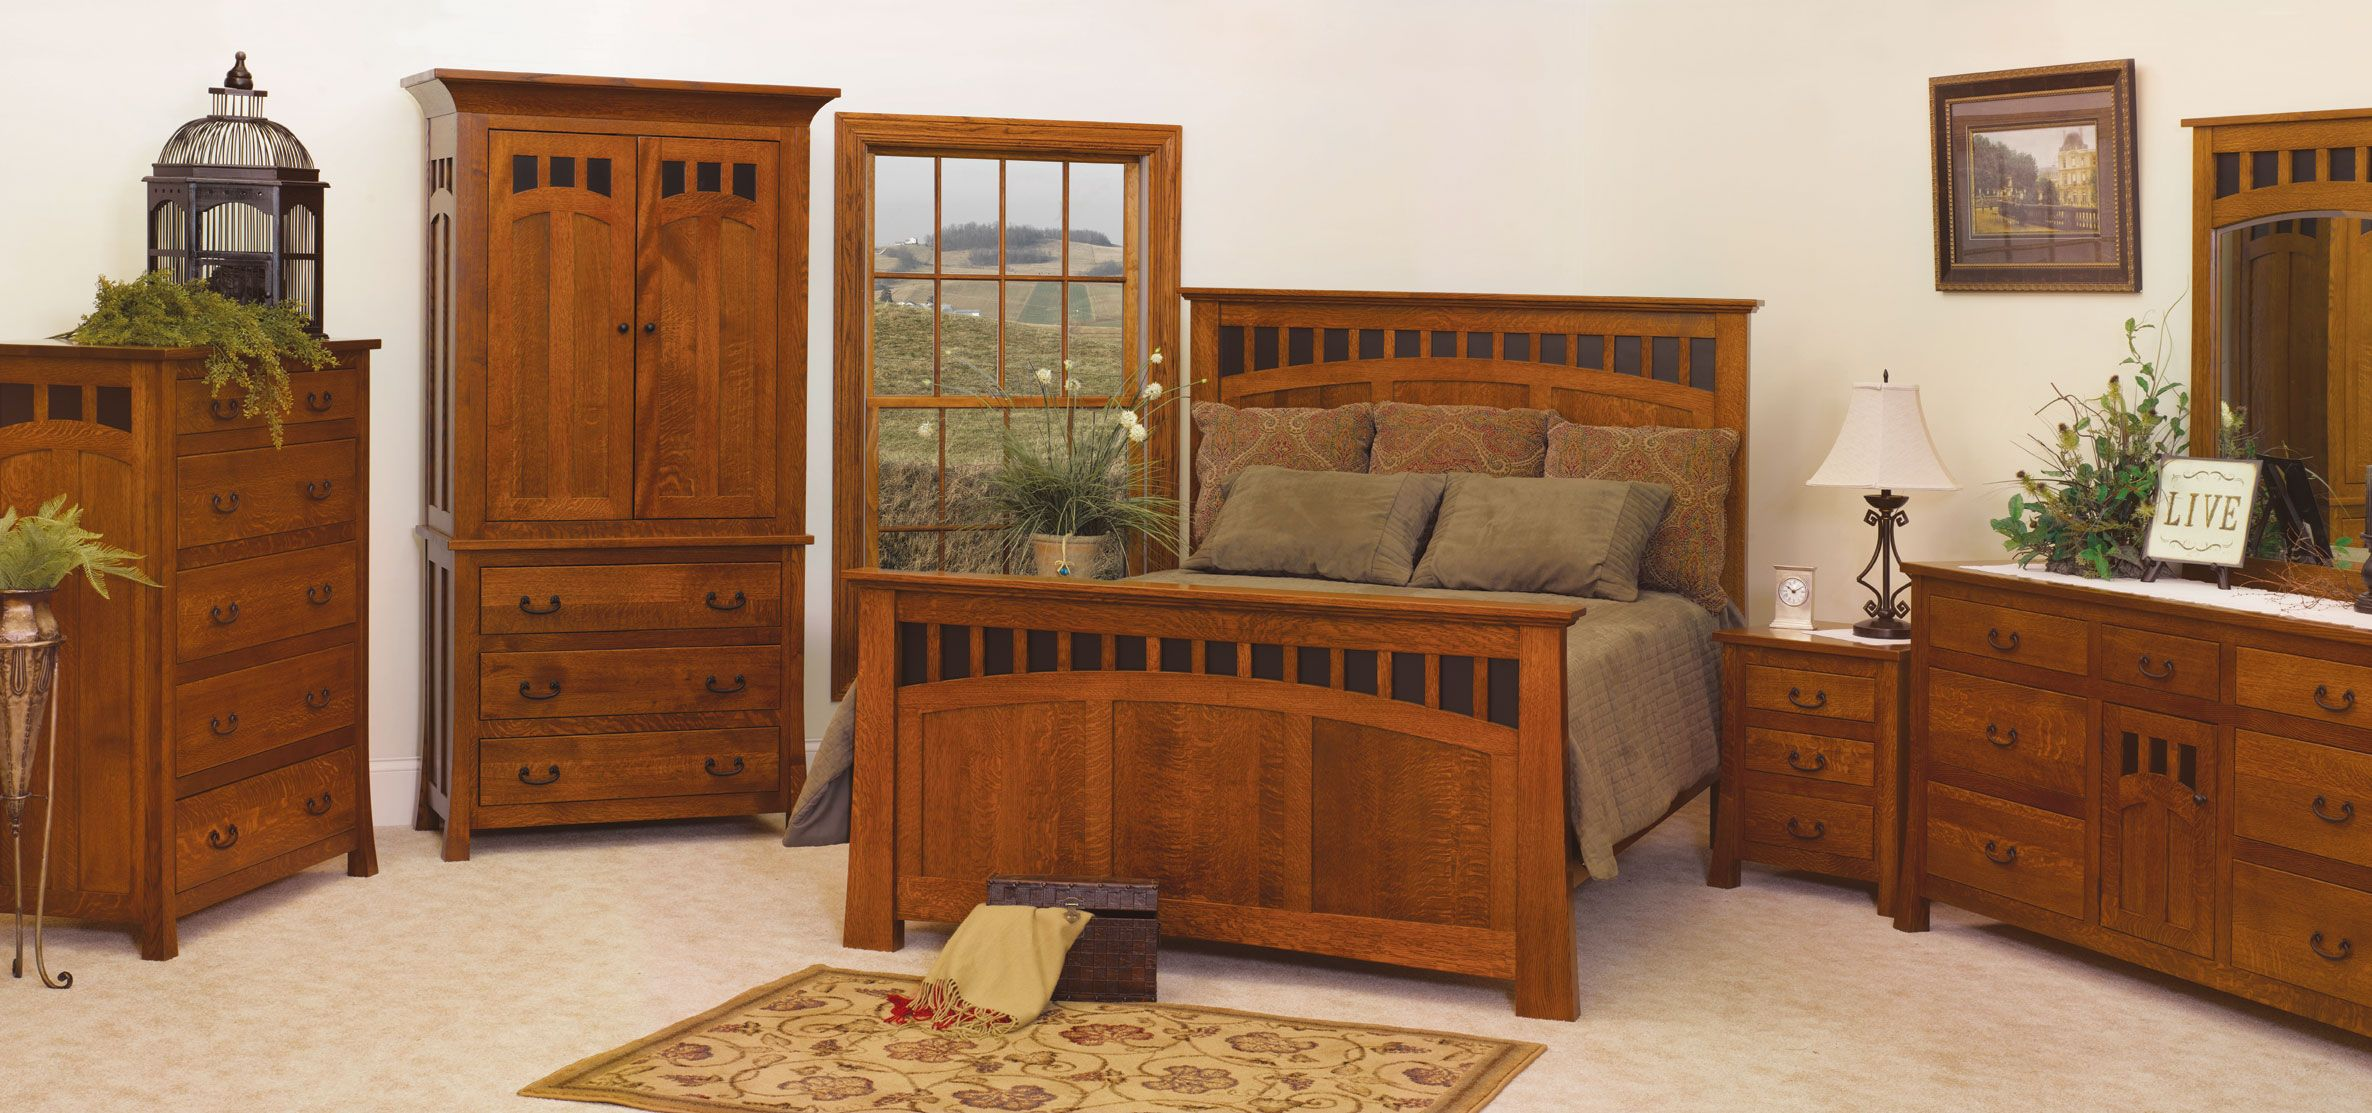 Mission style bedroom furniture collection. I really like the head board and dresser. Does anybody know who makes this line?